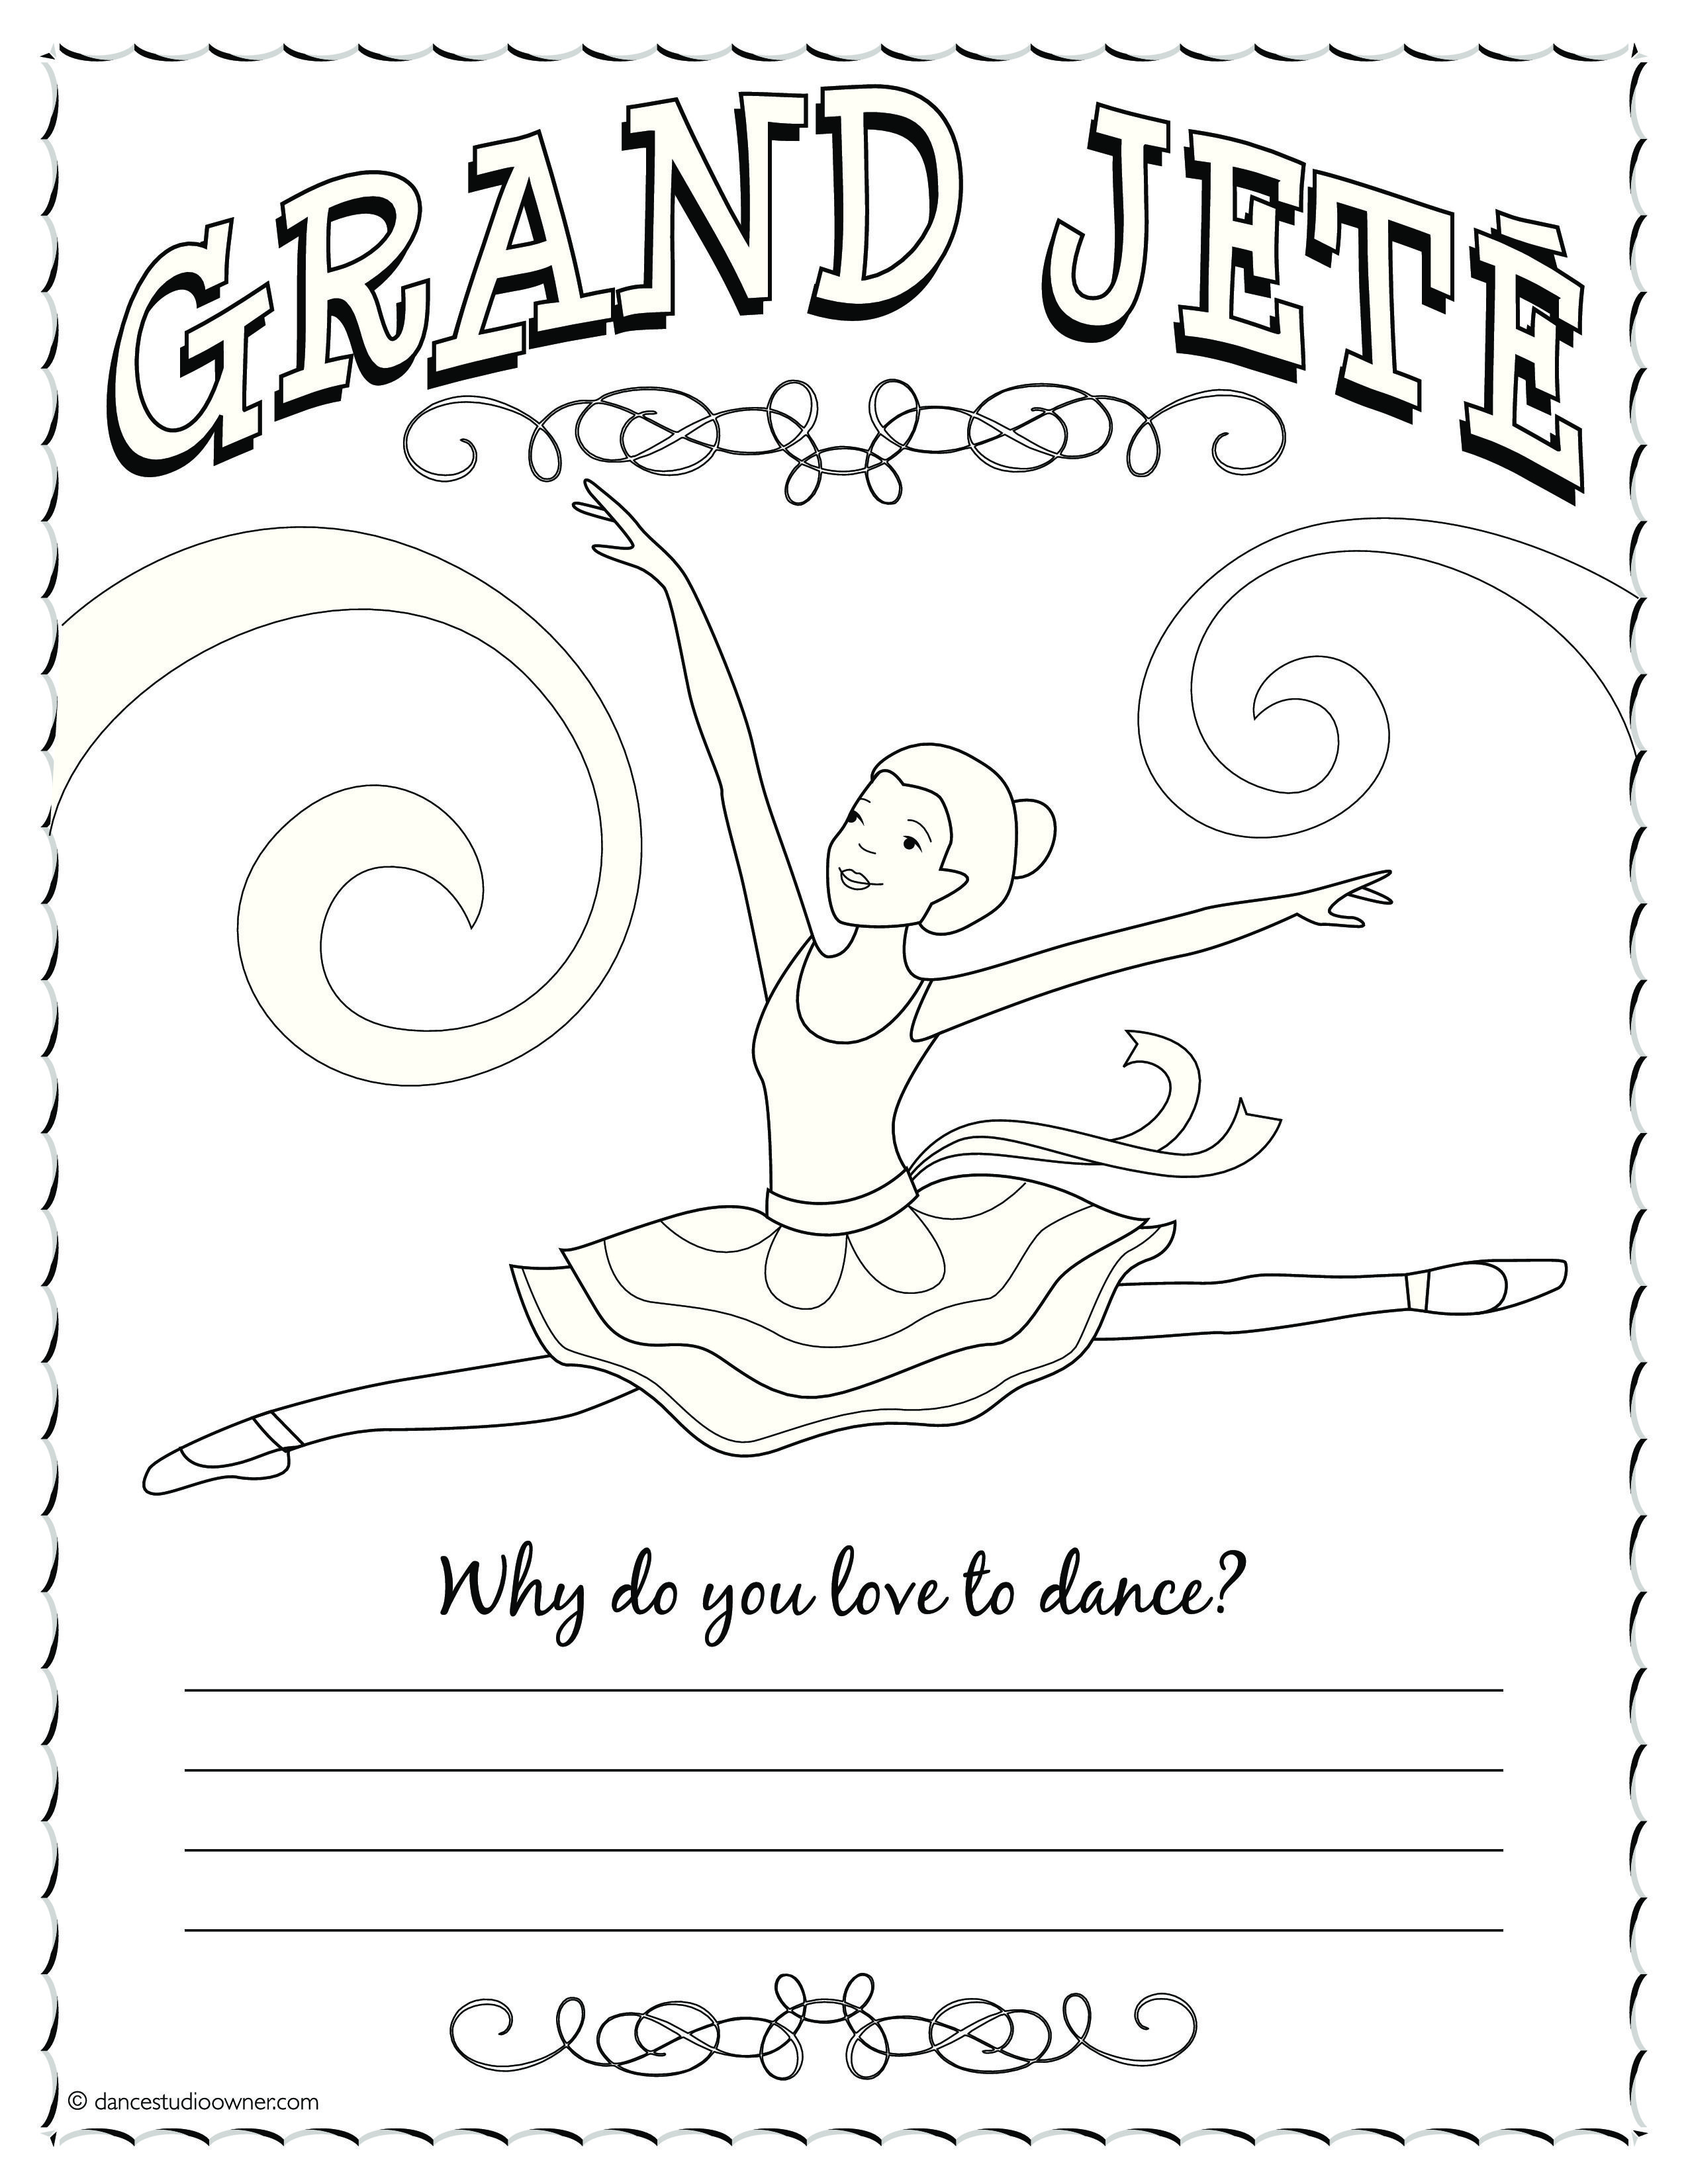 kids dancing coloring pages - photo#17